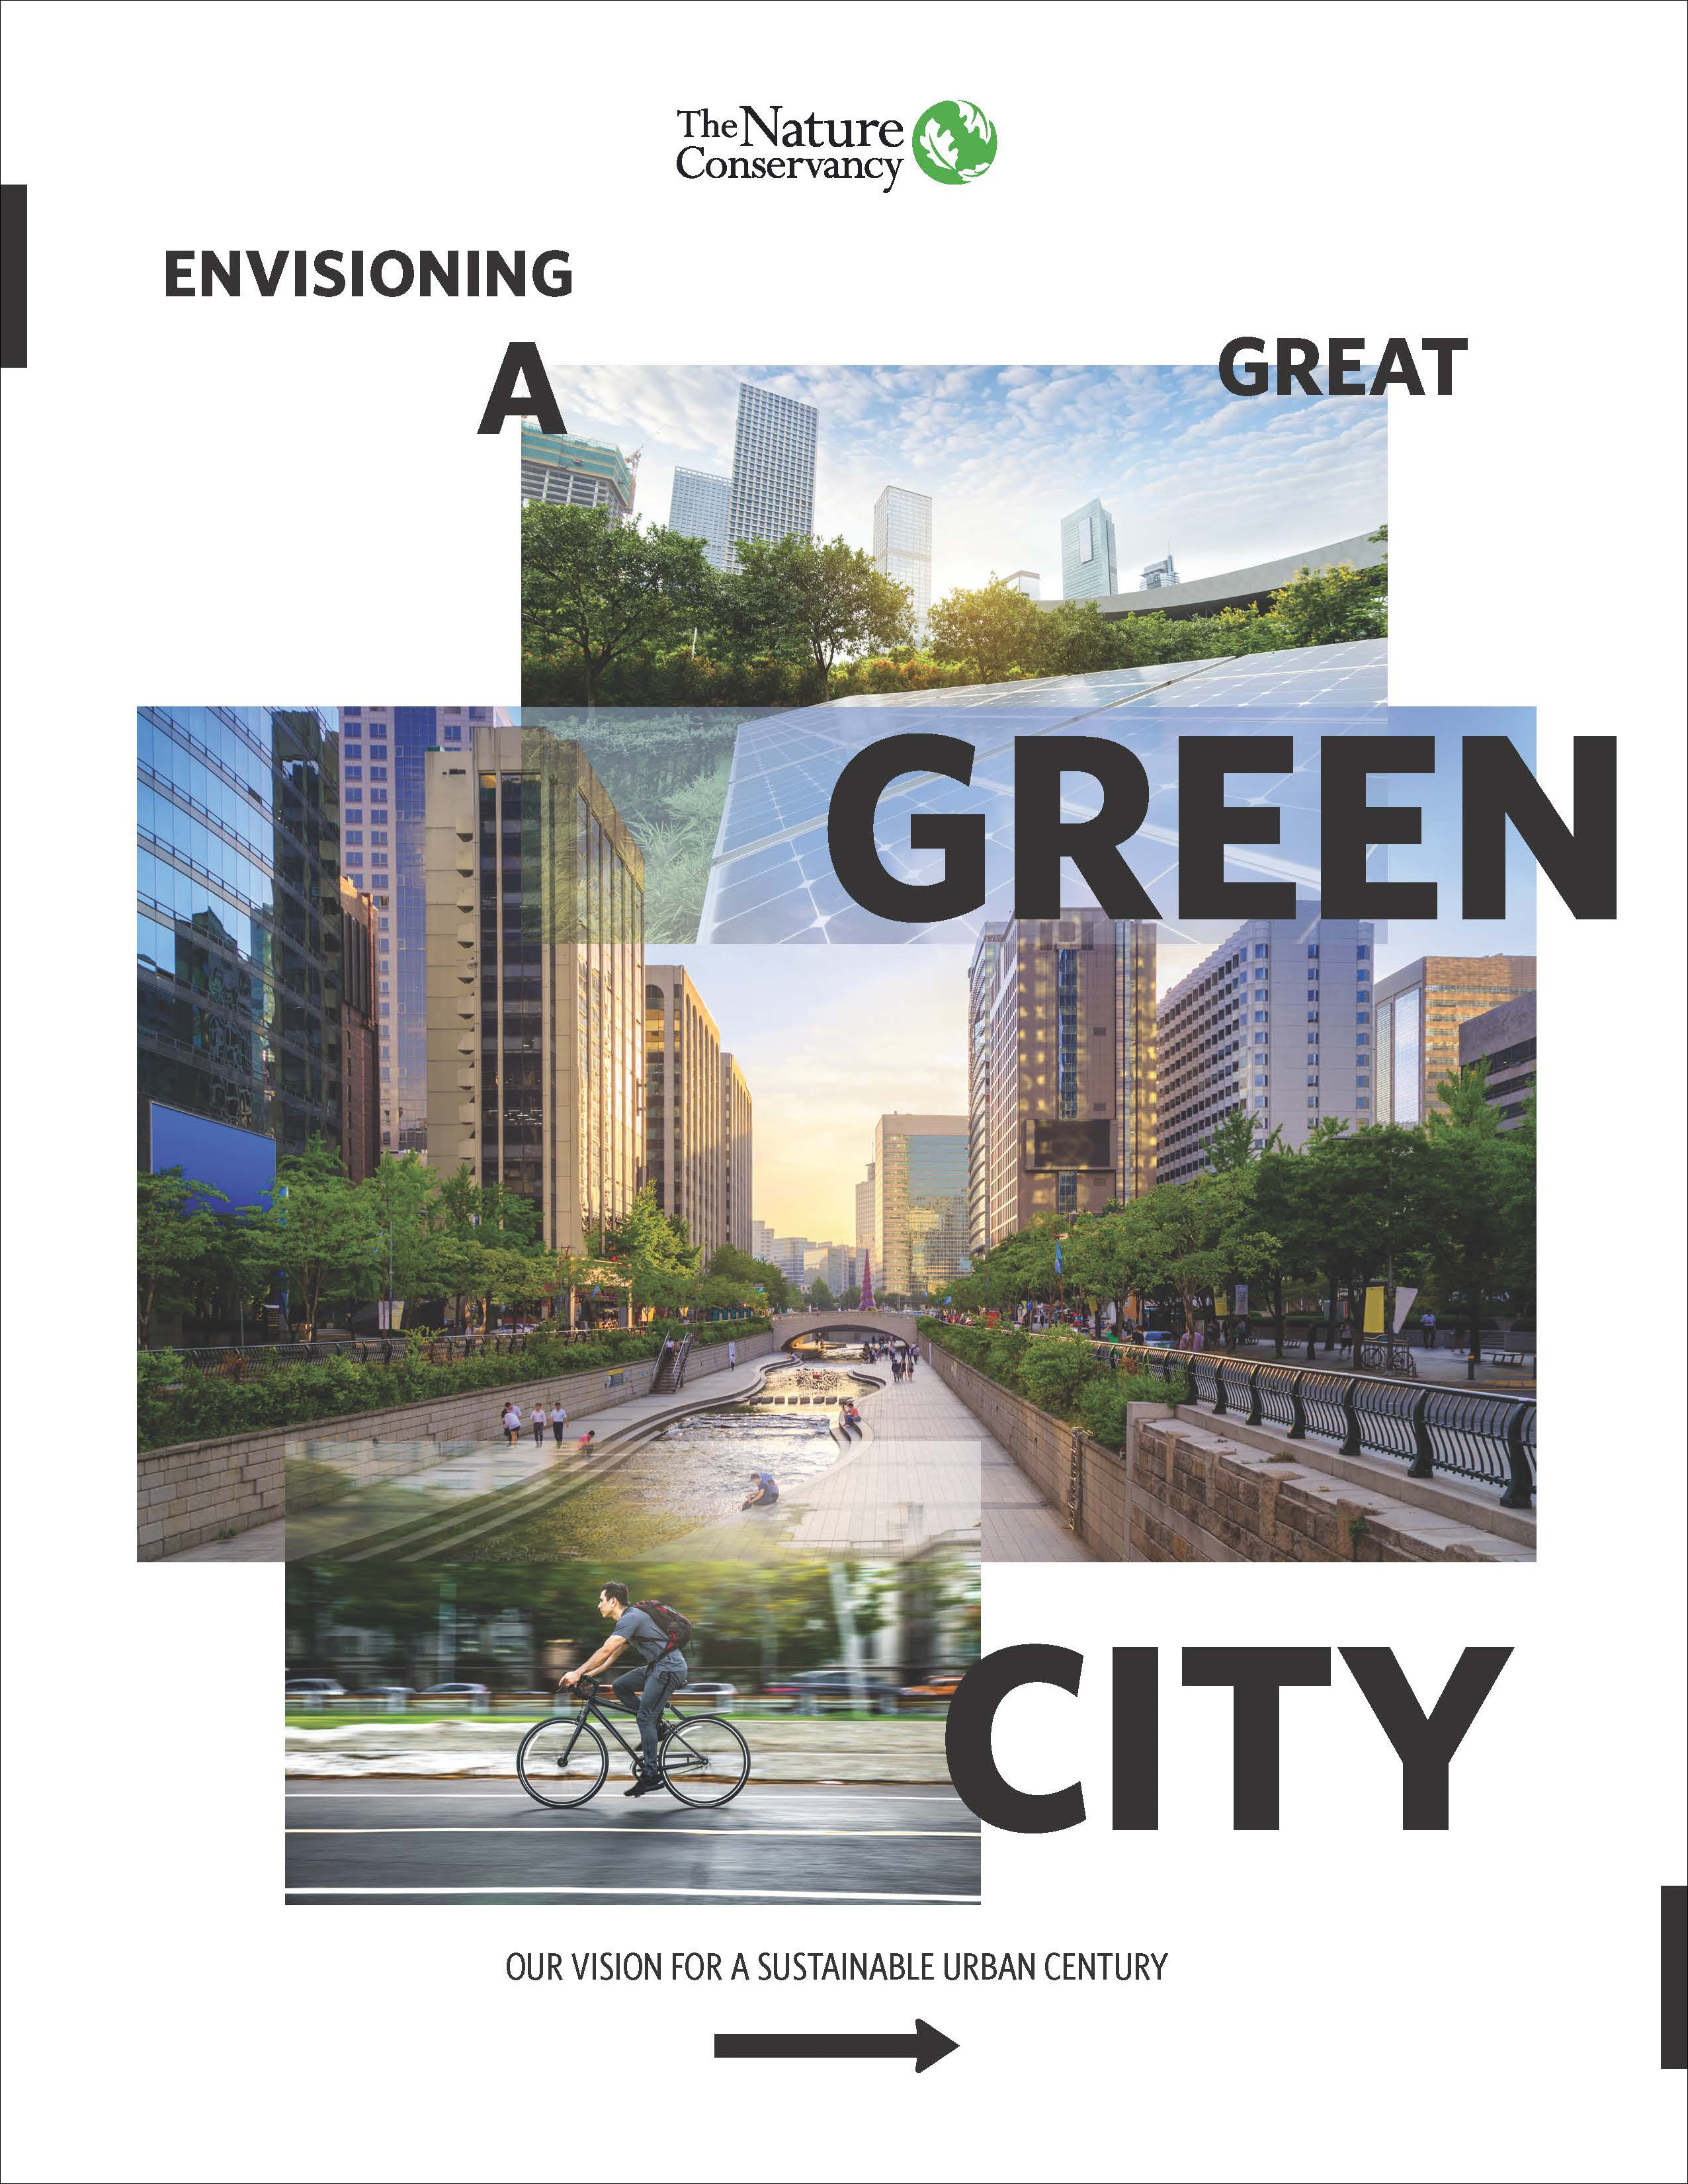 Report - Envisioning a Great Green City